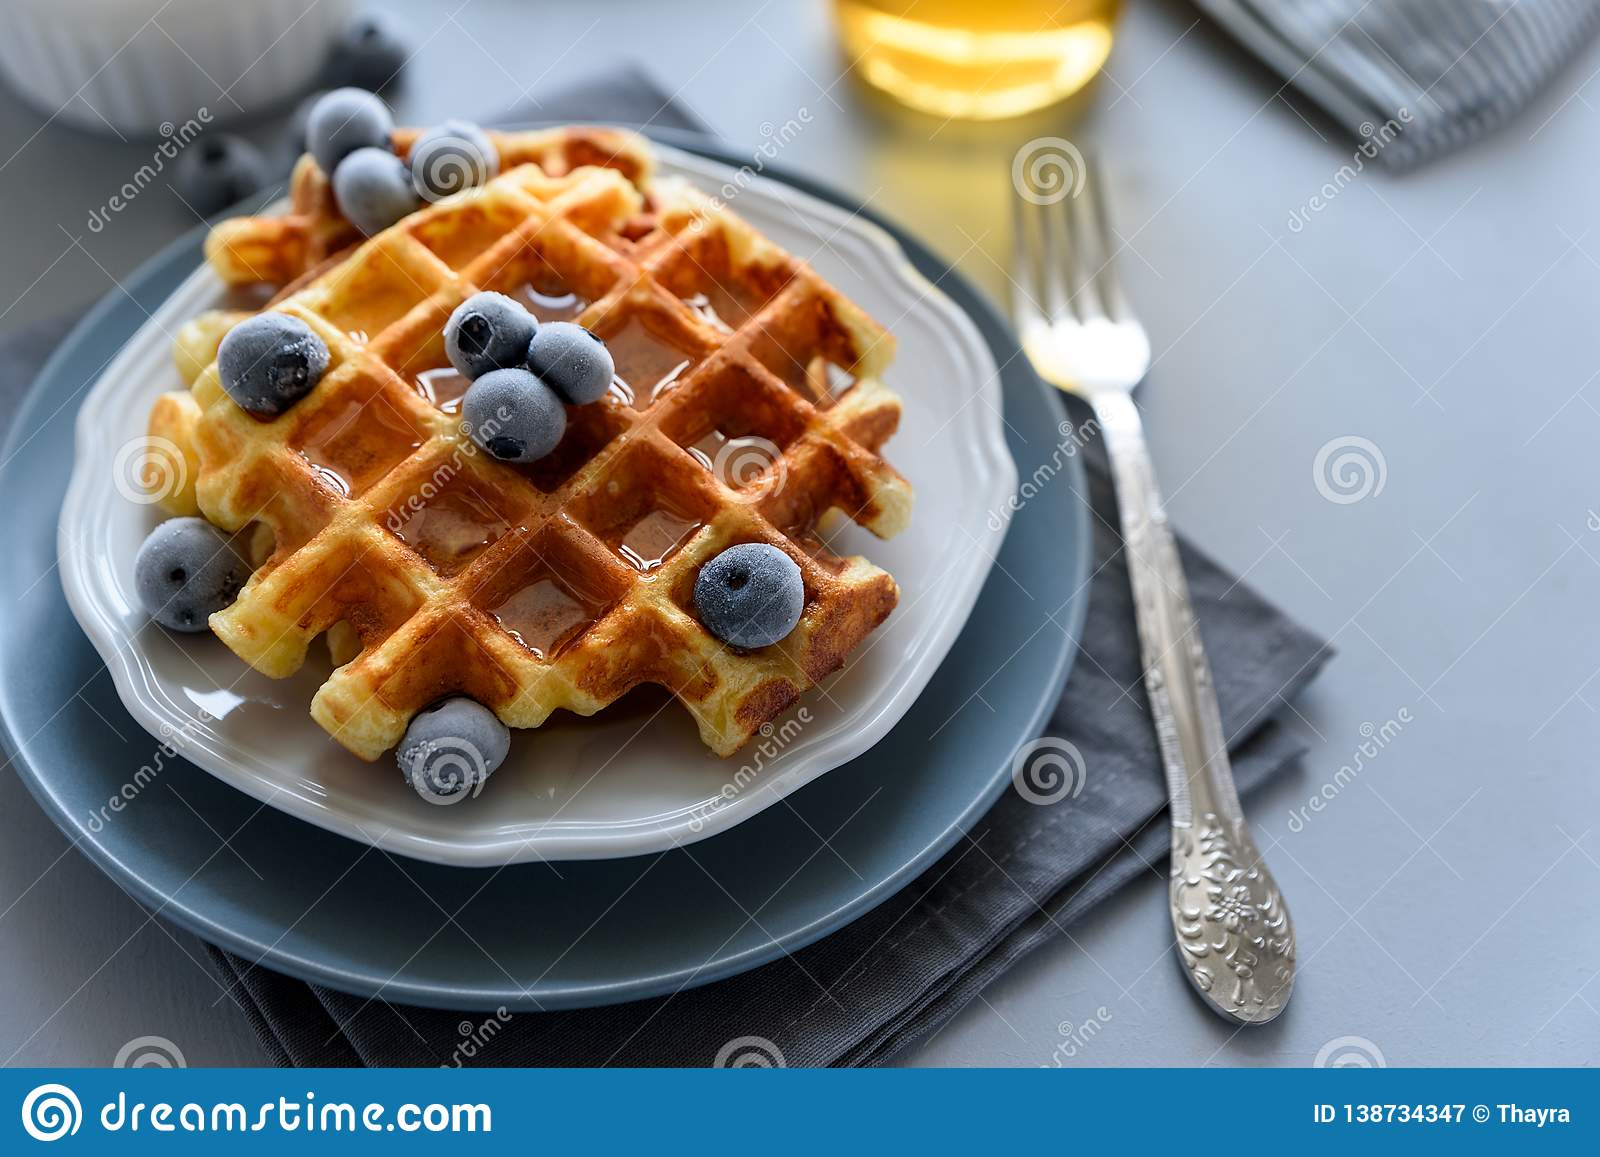 Belgian waffles with blueberries and honey on gray wooden background. Homemade healthy breakfast. Selective focus